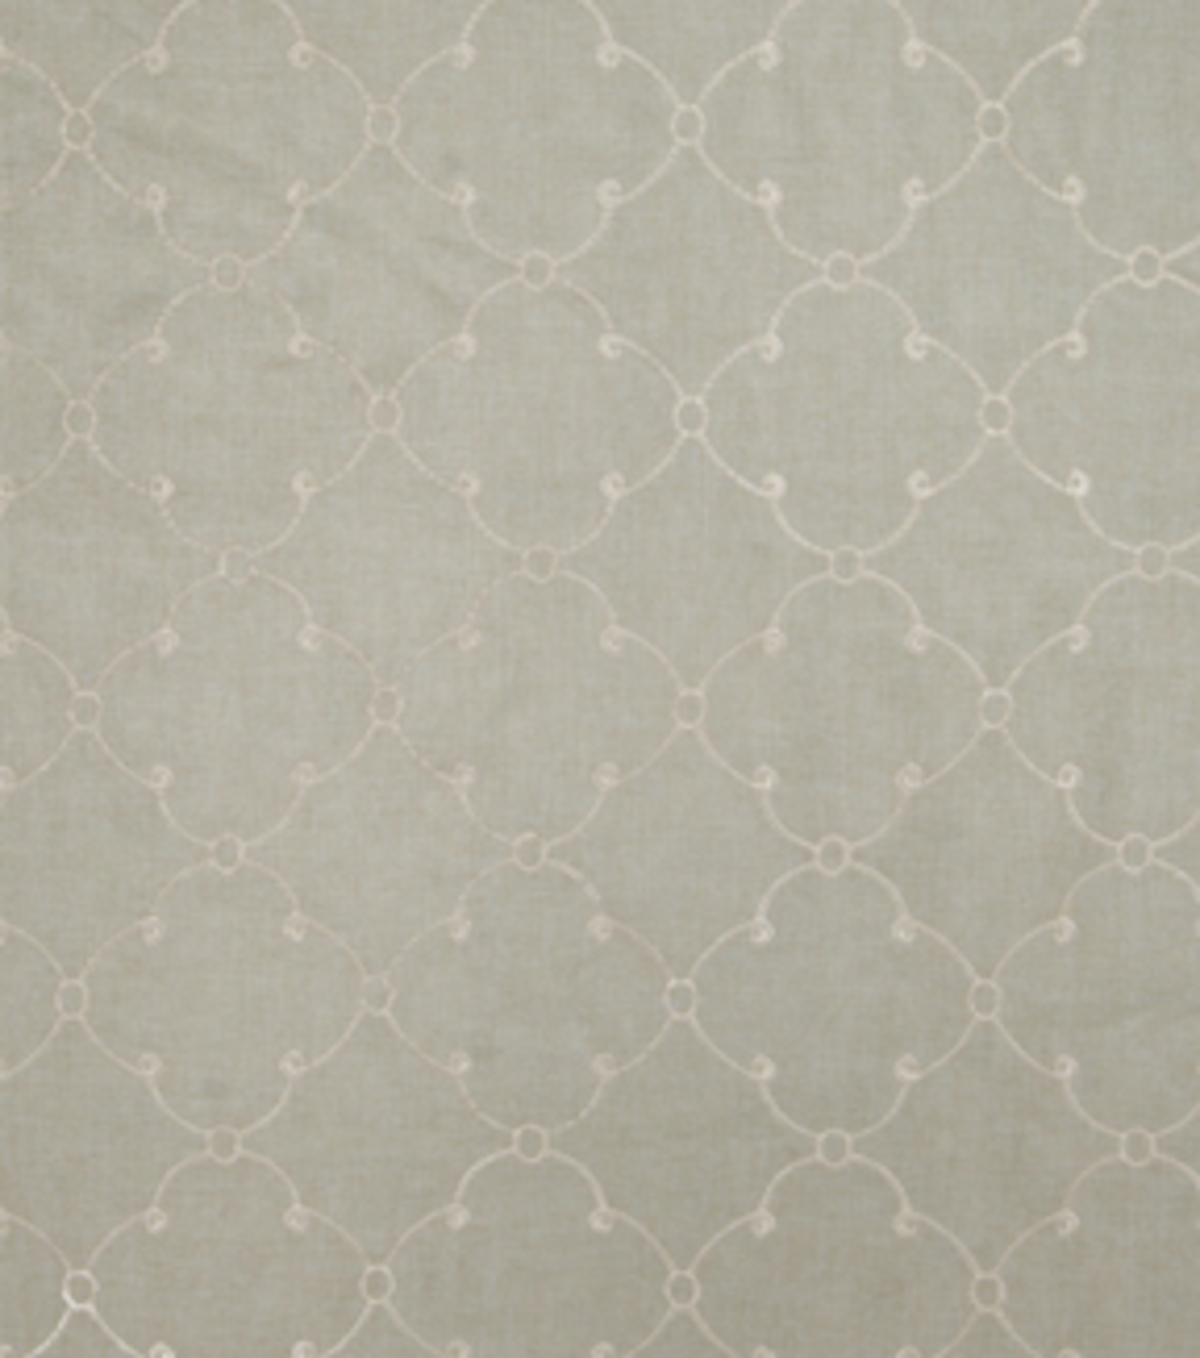 Home Decor 8\u0022x8\u0022 Fabric Swatch-Eaton Square Olmstead Aloe